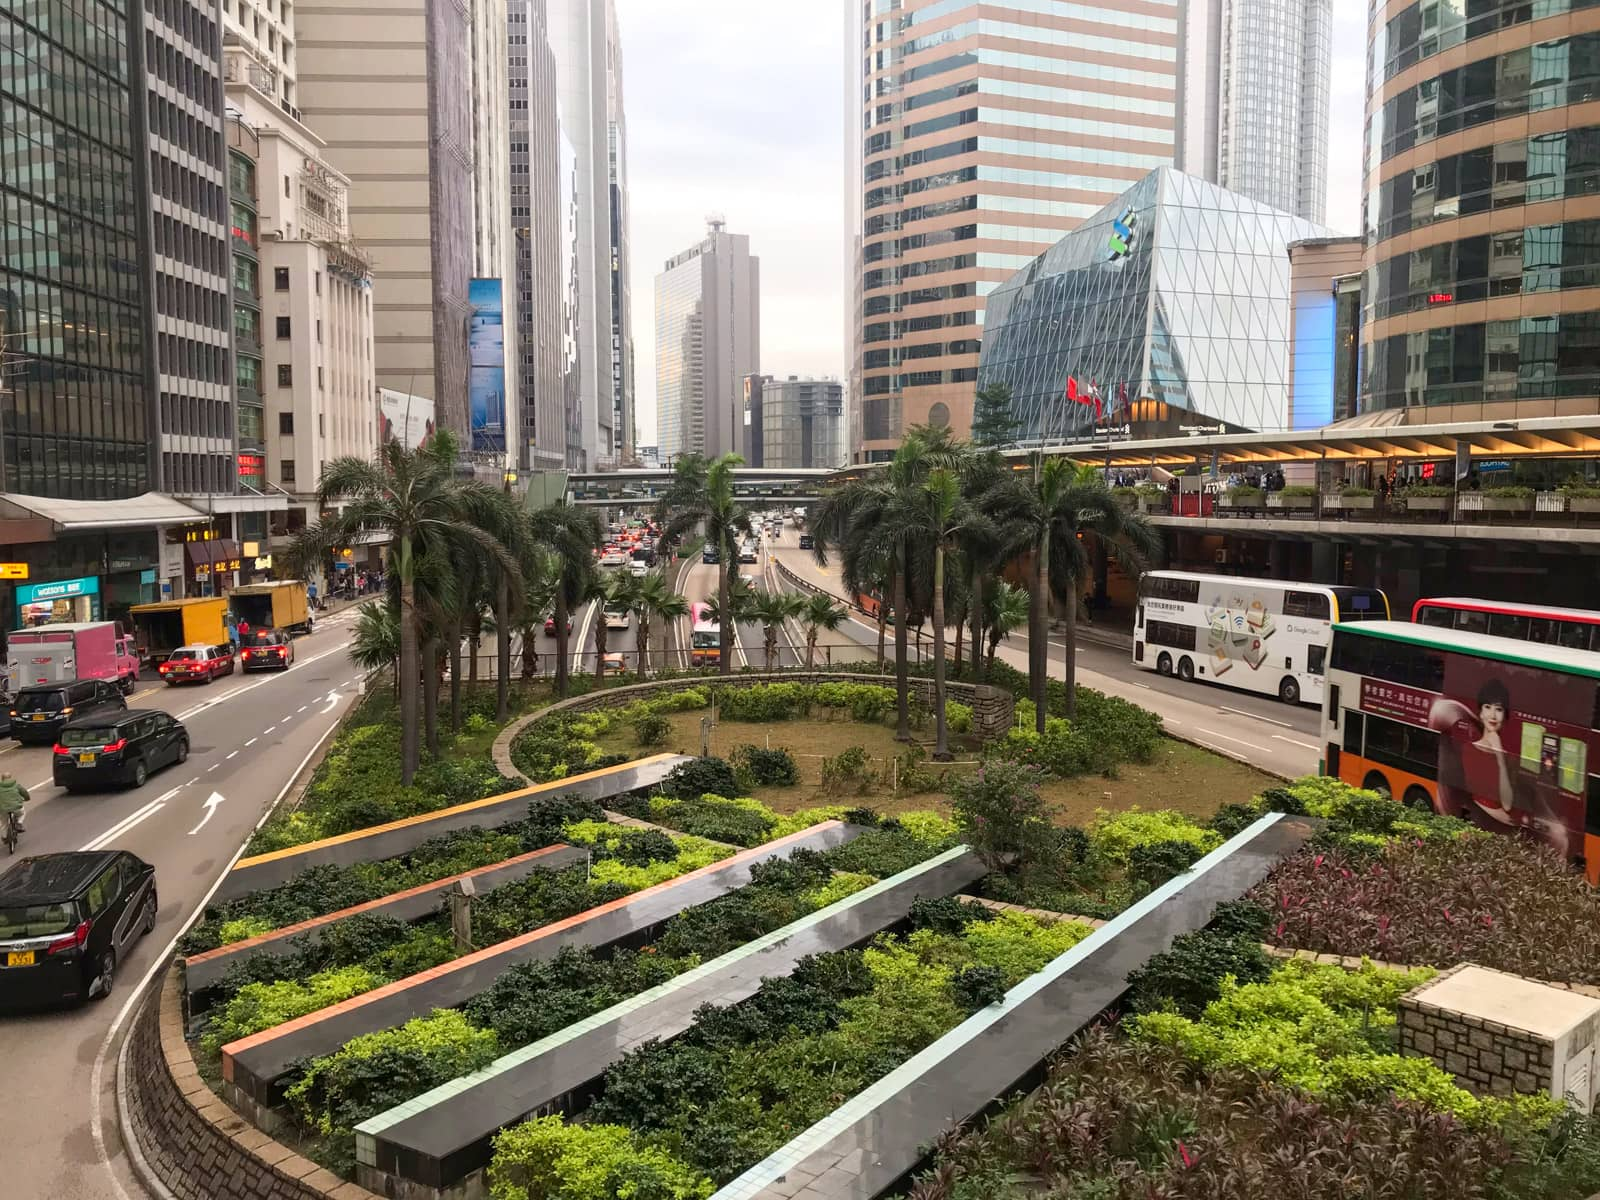 A business district of Hong Kong, where there is a busy road of vehicles. In the centre of the frame is a garden that appears to be well groomed and filled with some palm trees and shrubs.